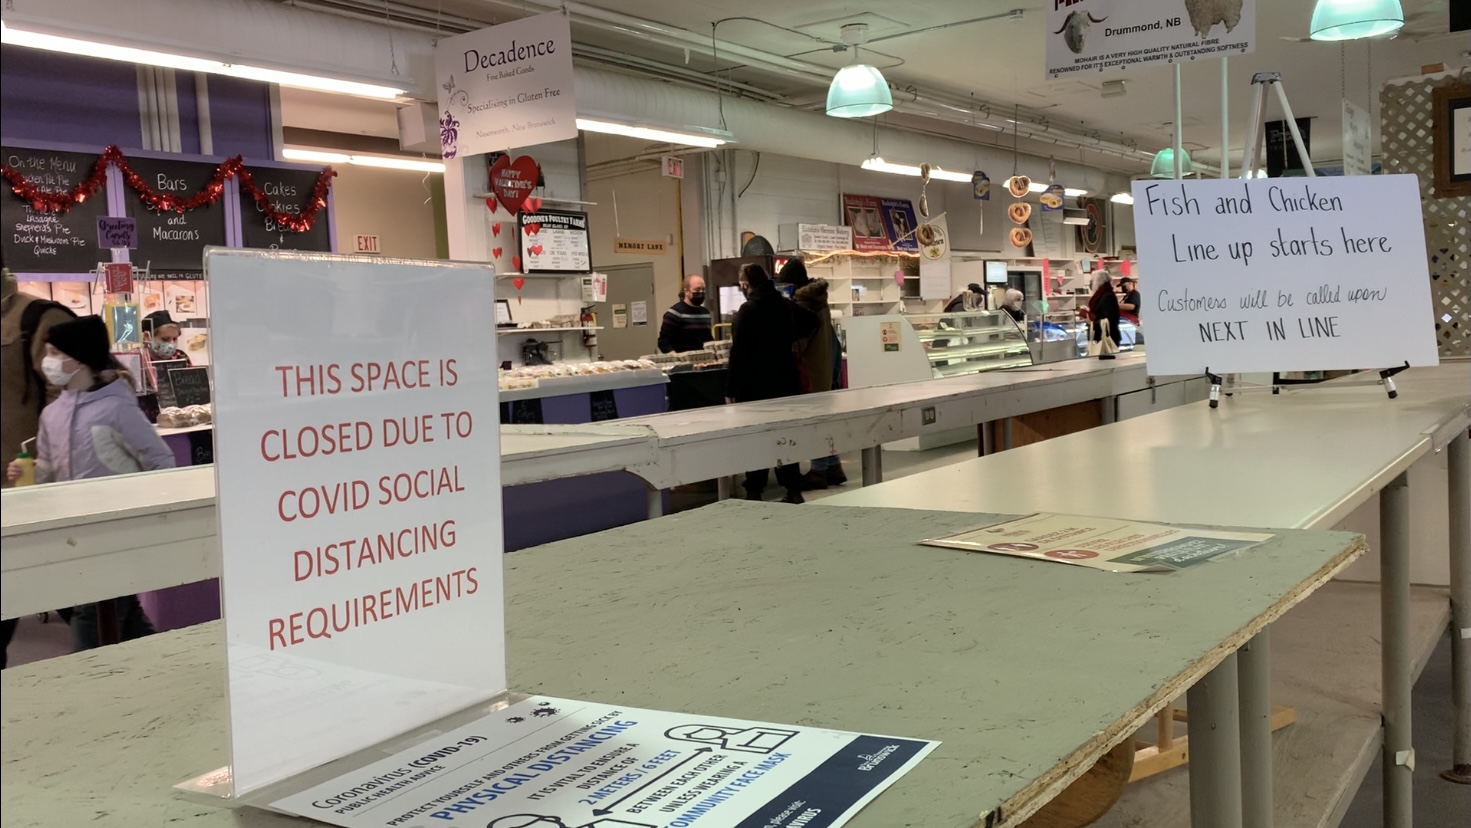 A sign inside The Fredericton Boyce Farmers Market explains why the middle isle is lacking vendors